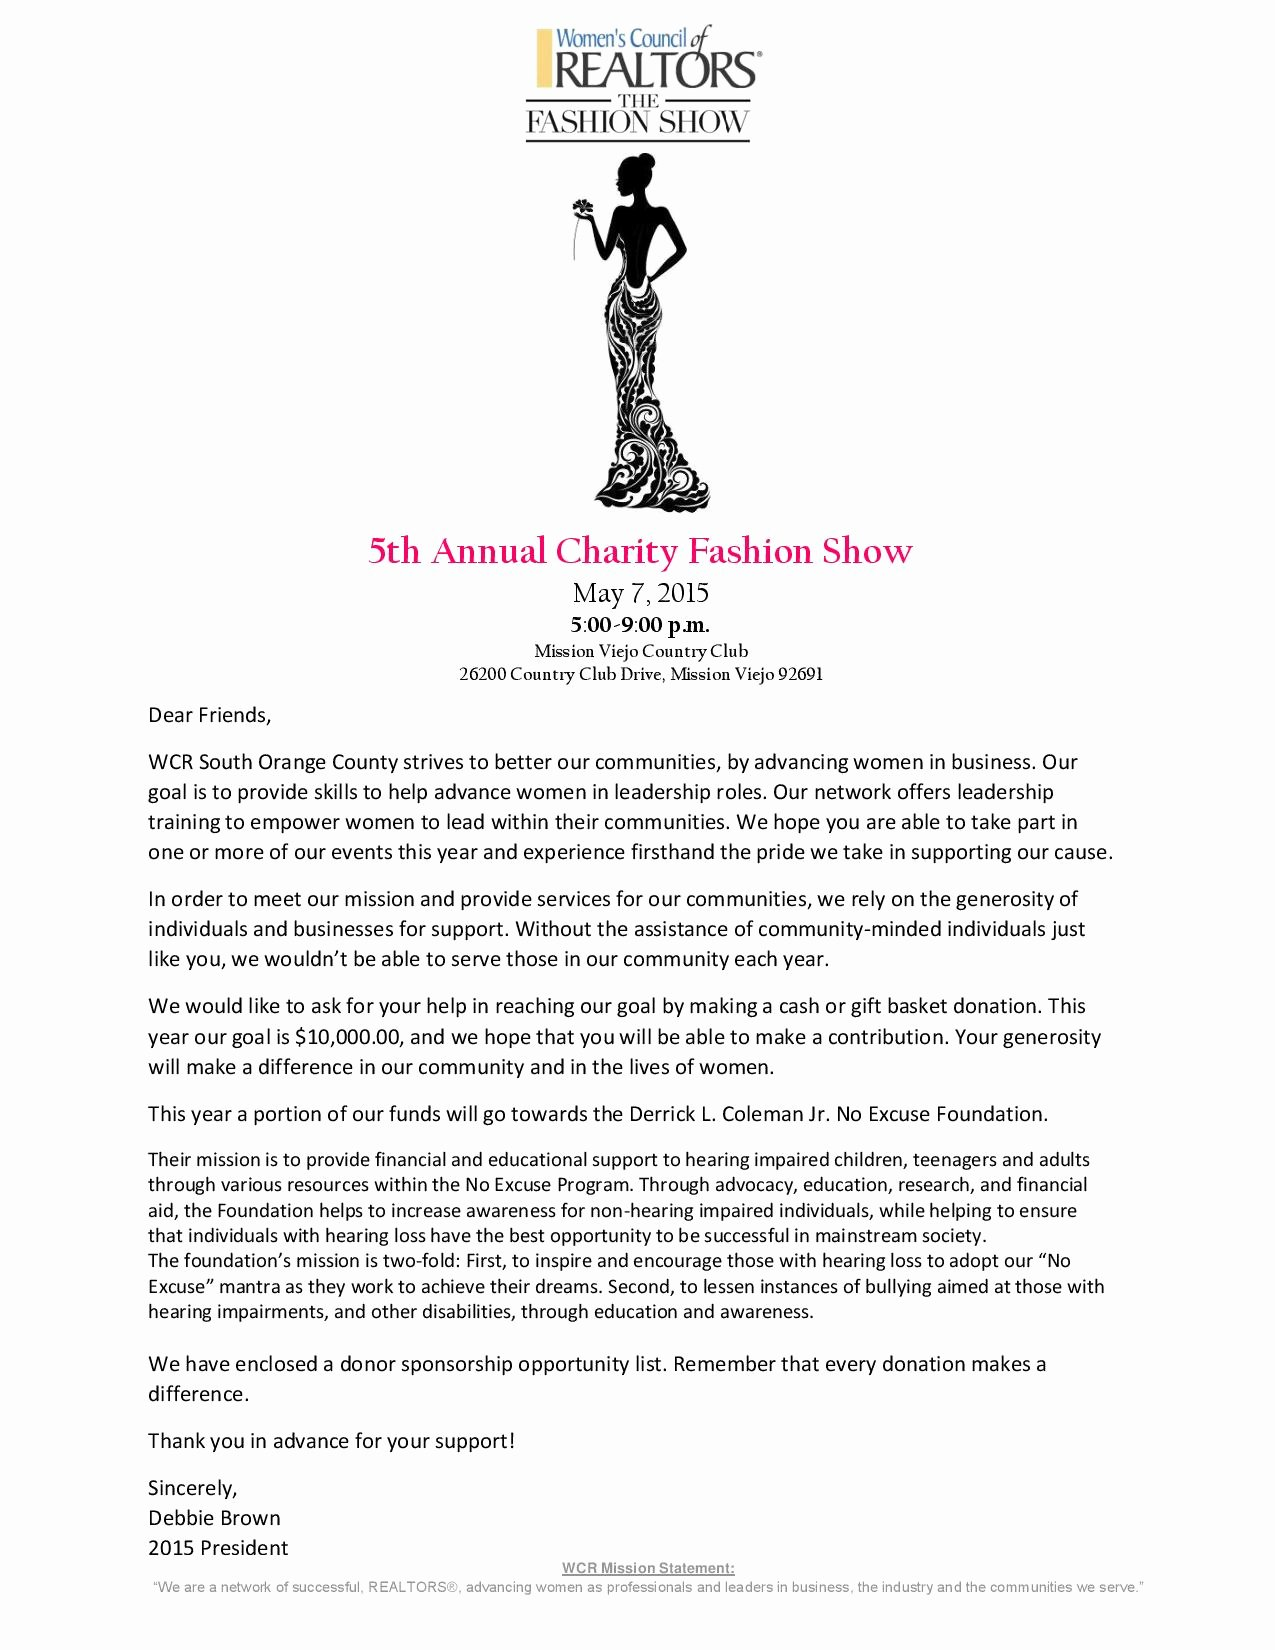 Fashion Show Sponsorship Letter Beautiful Wcrsoc 5th Annual Fashion Show Oc Lifestyle — Oc Lifestyle